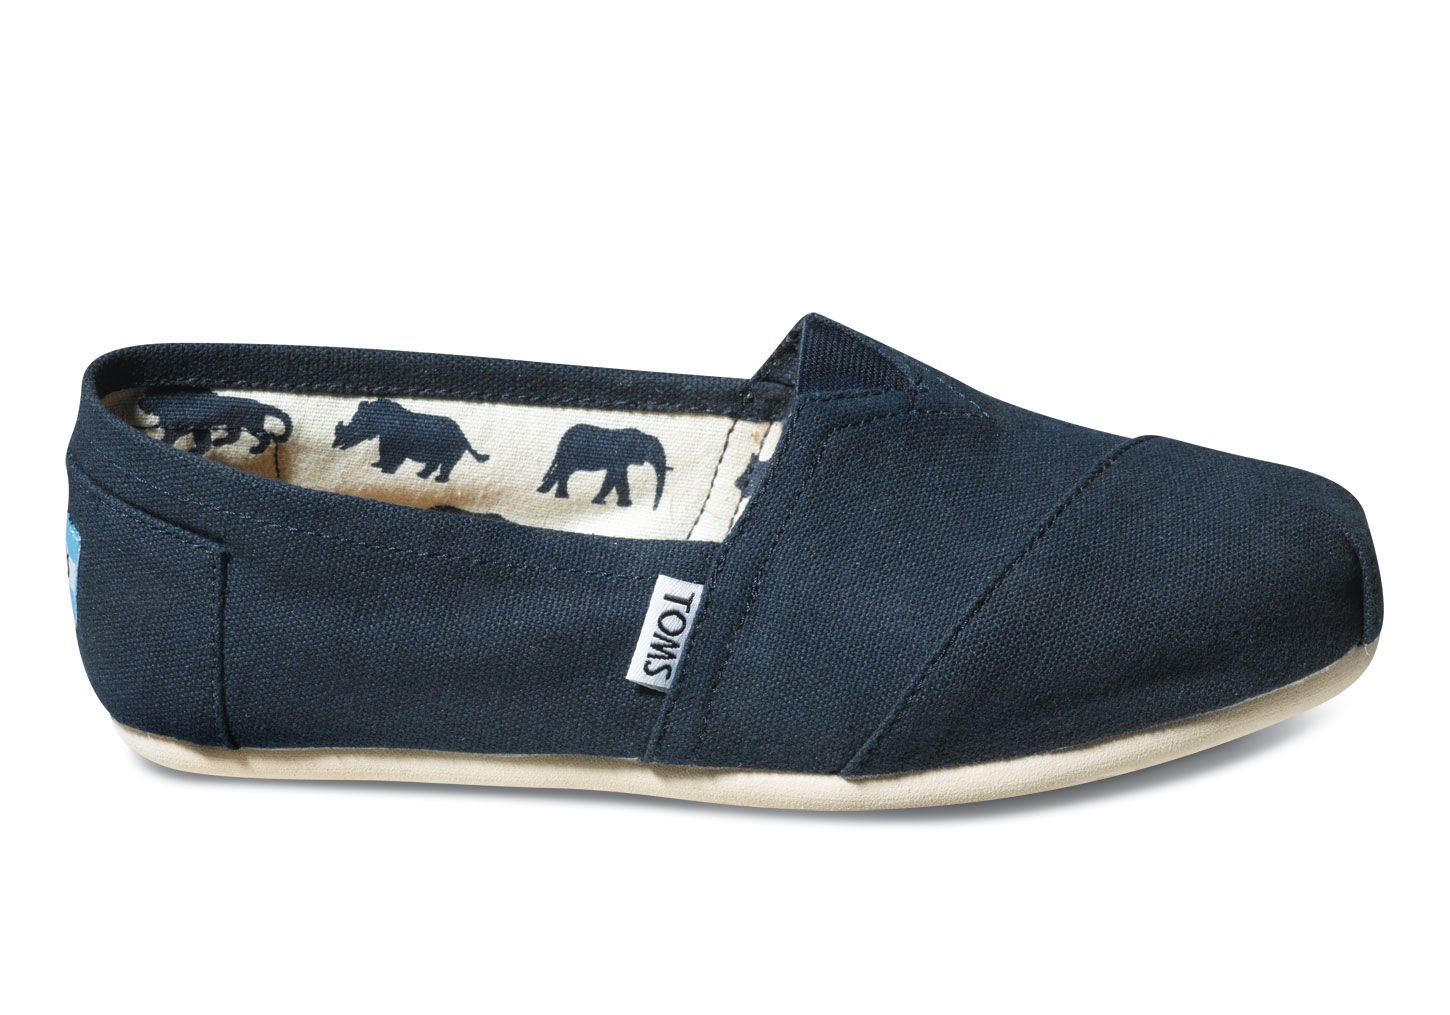 TOMS Women's Canvas Slip-On,Navy Canvas,7 M